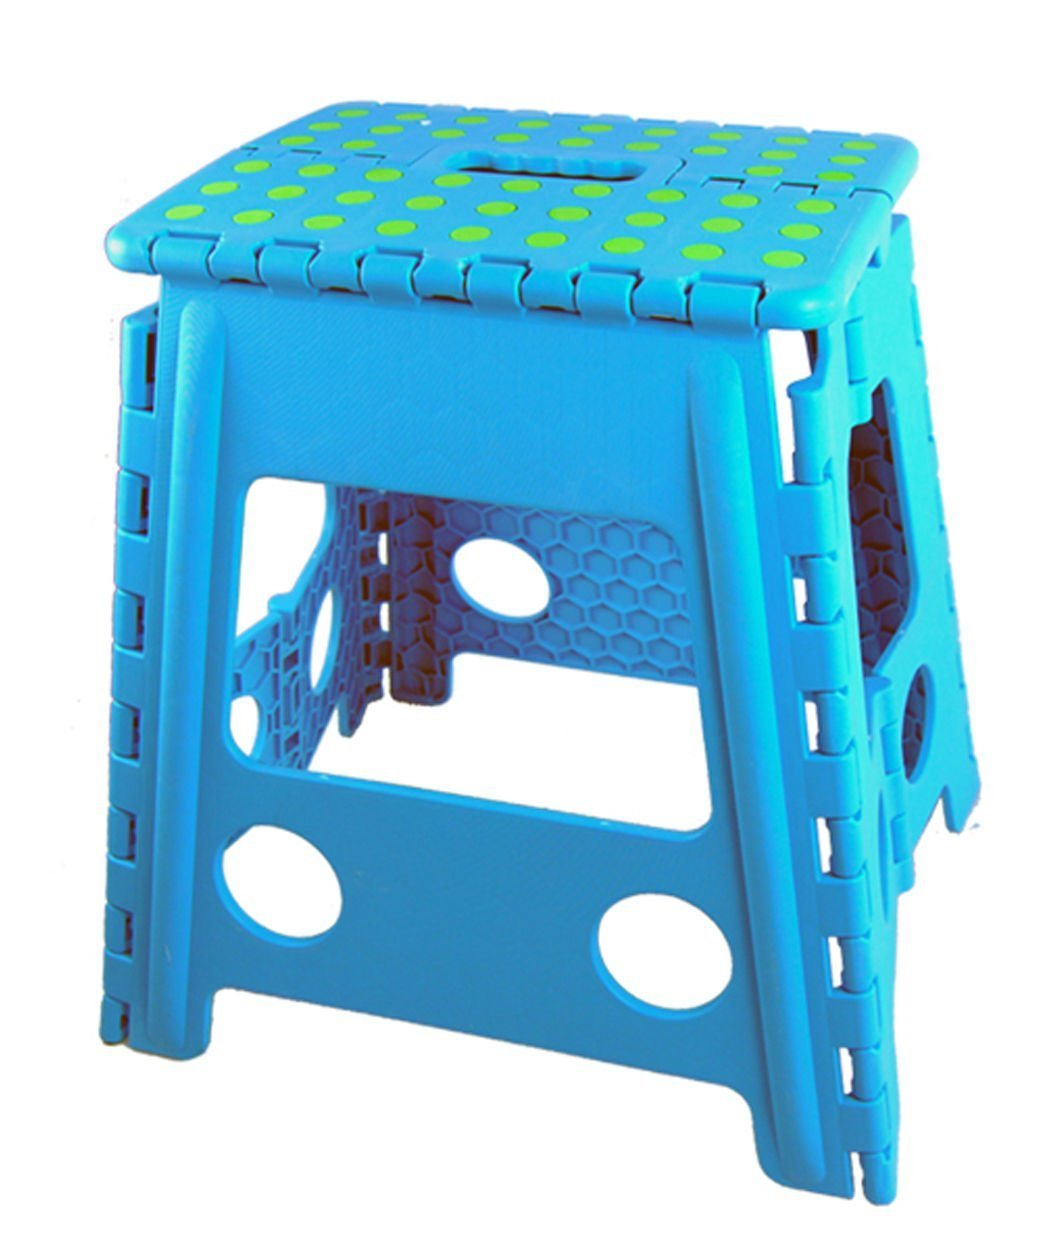 tr24/ Folding Stool Step Stool Foldable Step Stool Stool Step Step Stool Up To 150/ Kg, Blue